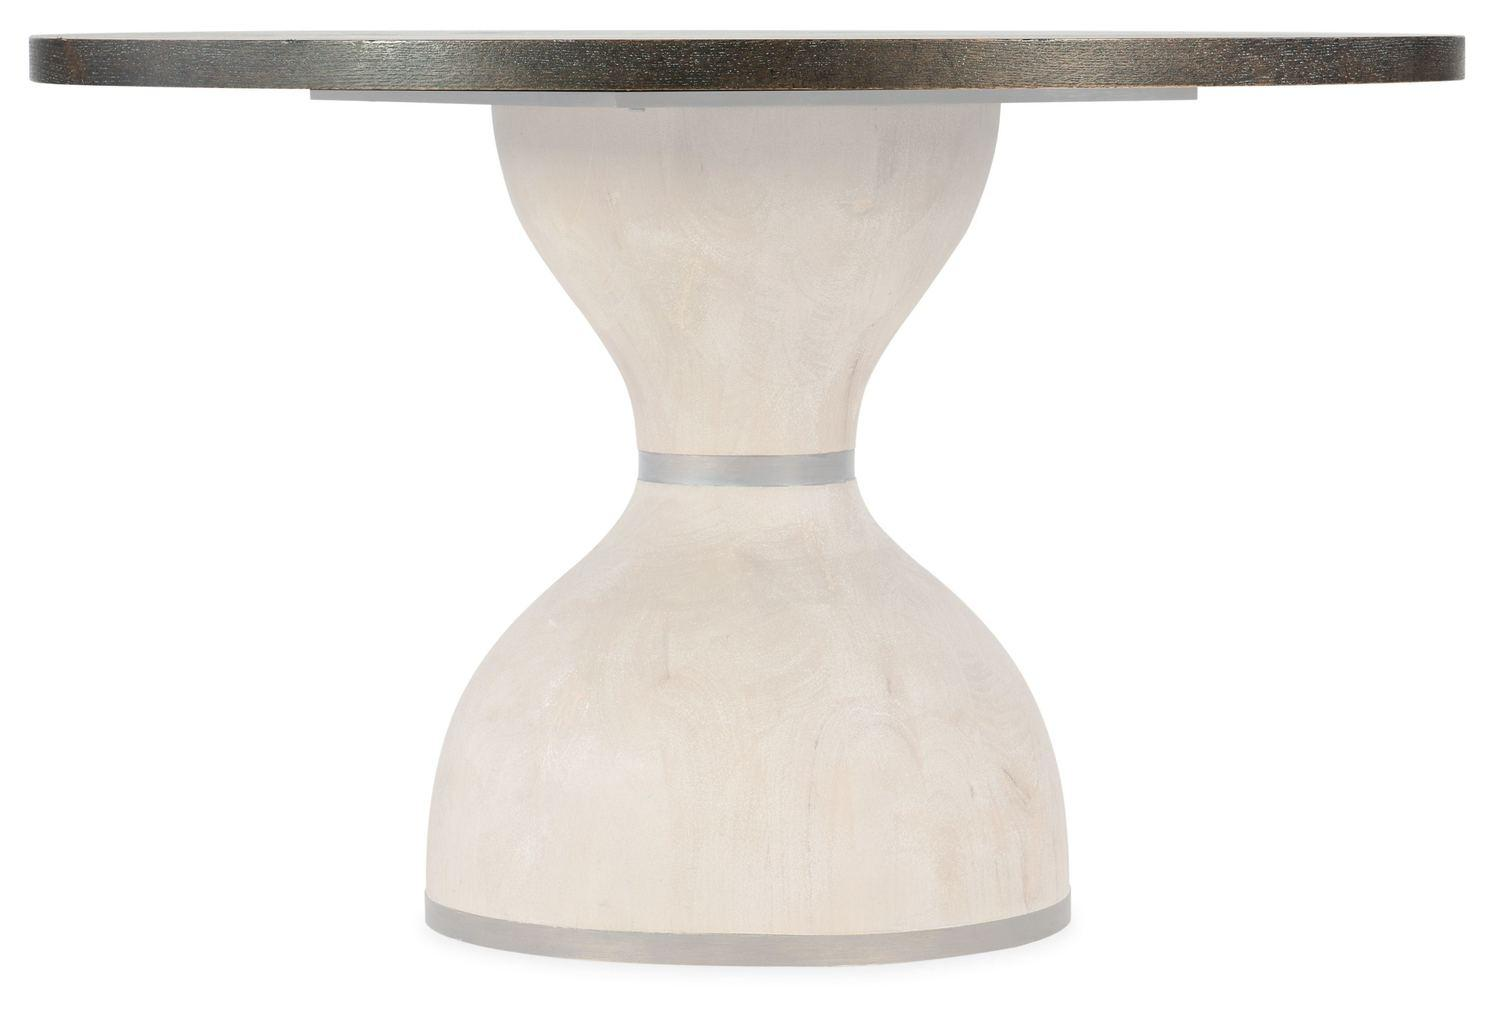 Hooker FurnitureDining Room Miramar Point Reyes Botticelli 48in Round Dining Table Top